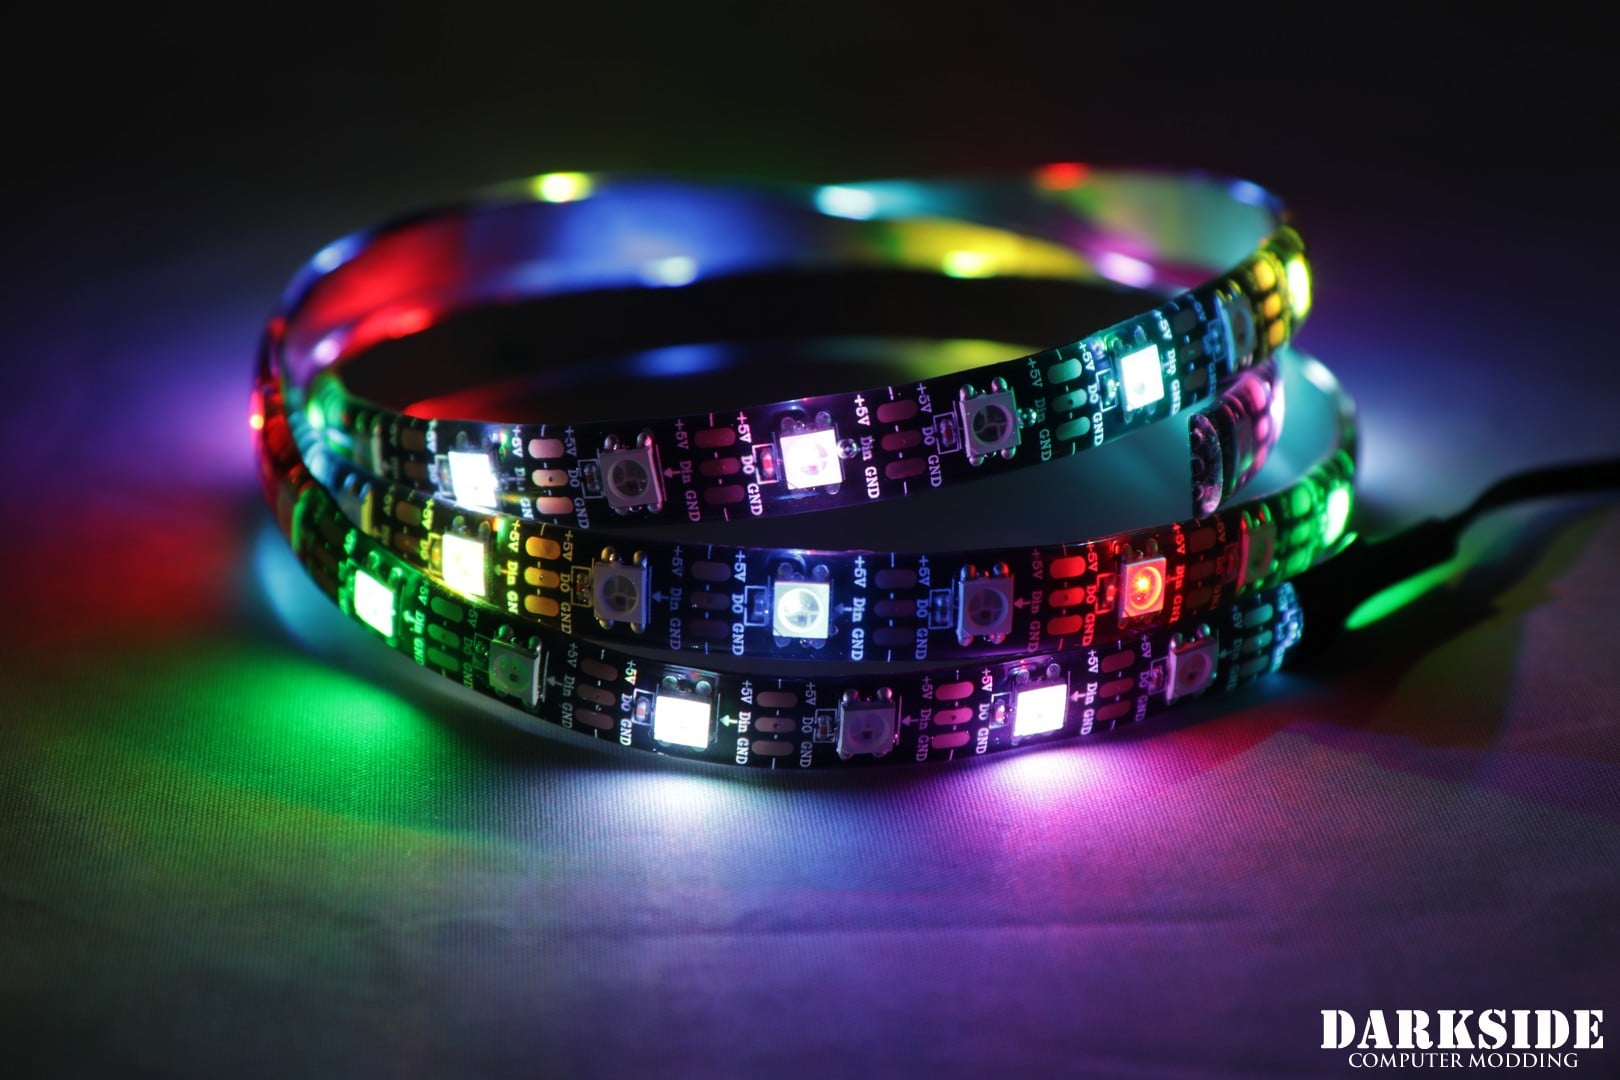 DarkSide Digital RGB LED 5v DC Kit (0.5 meter)